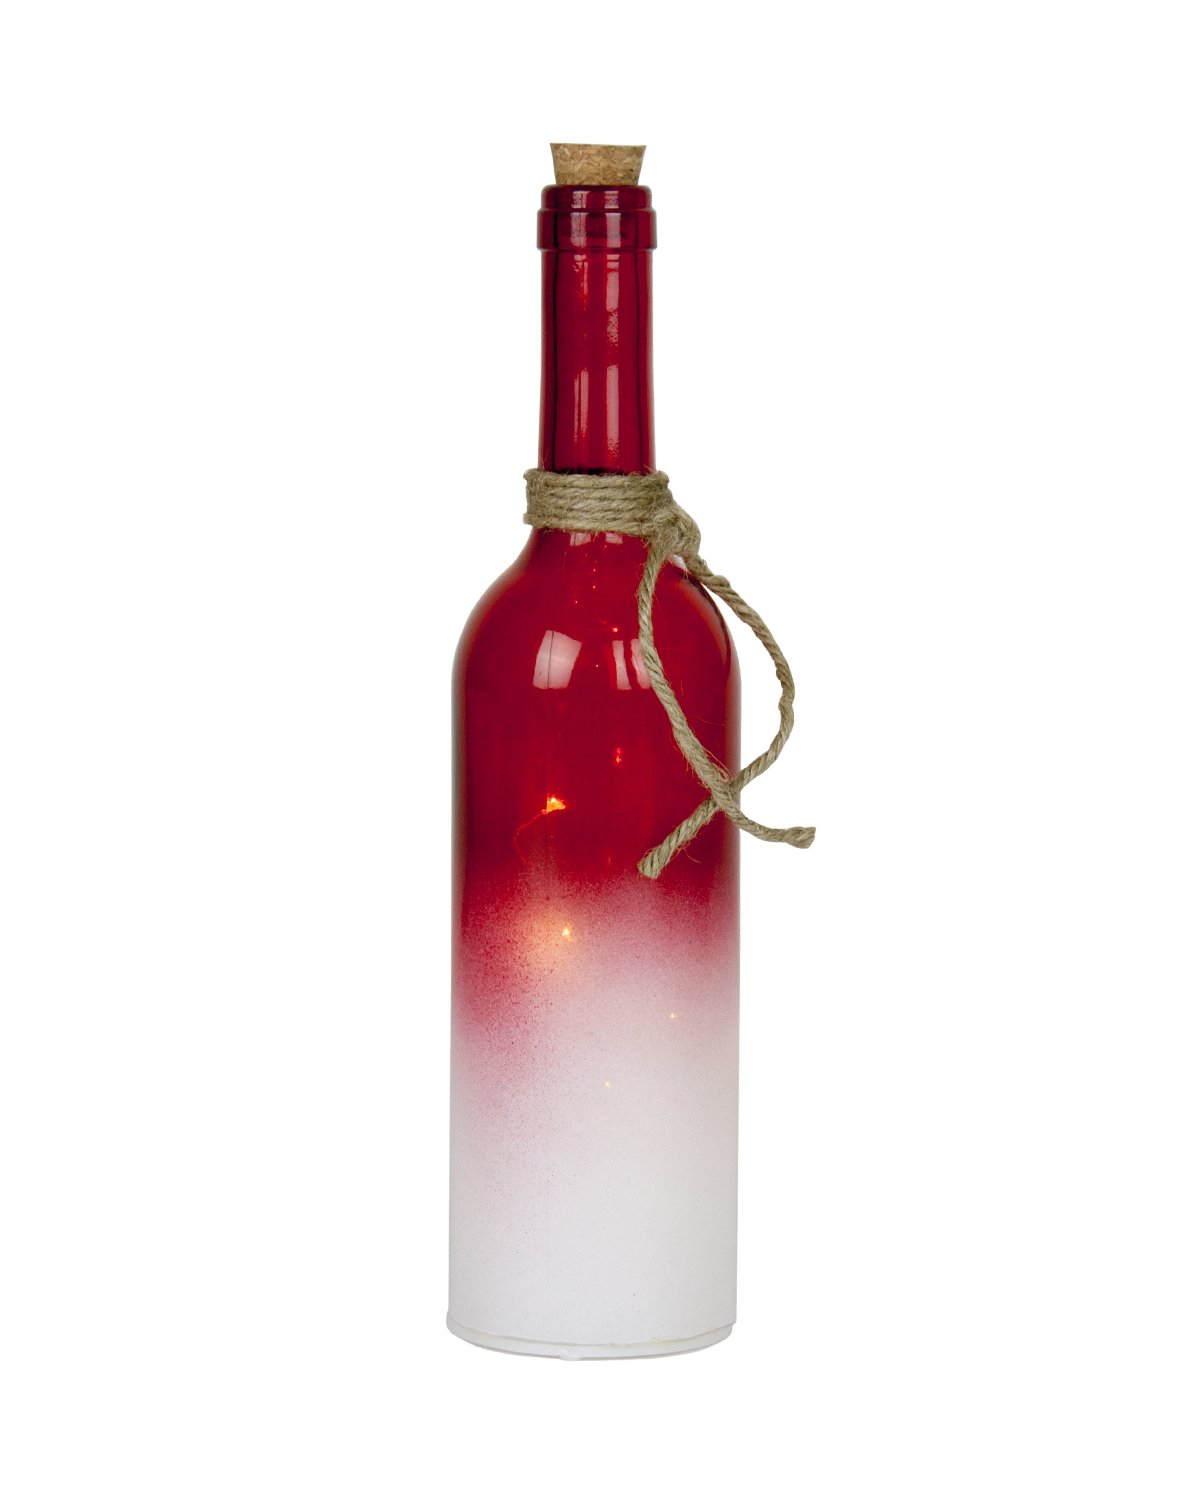 Amazon.com: Fairylight Wine Bottle Lights With On/Off Switch and ...